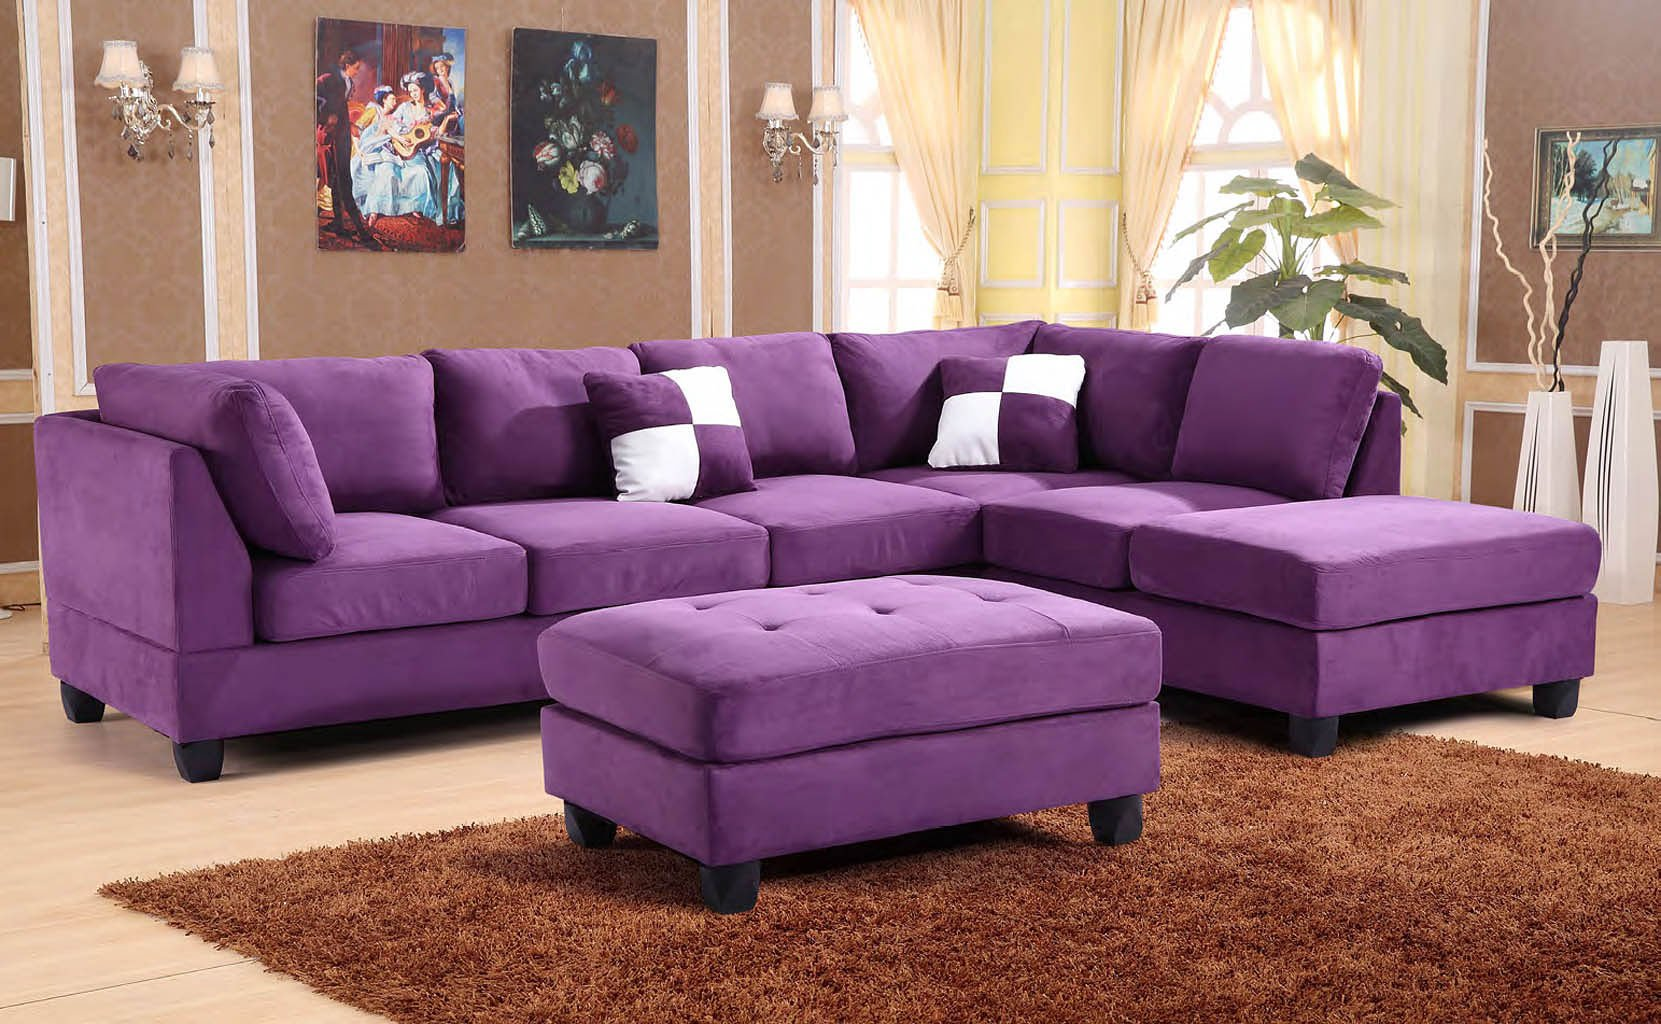 g637 reversible sectional set purple living room sets living room furniture living room. Black Bedroom Furniture Sets. Home Design Ideas